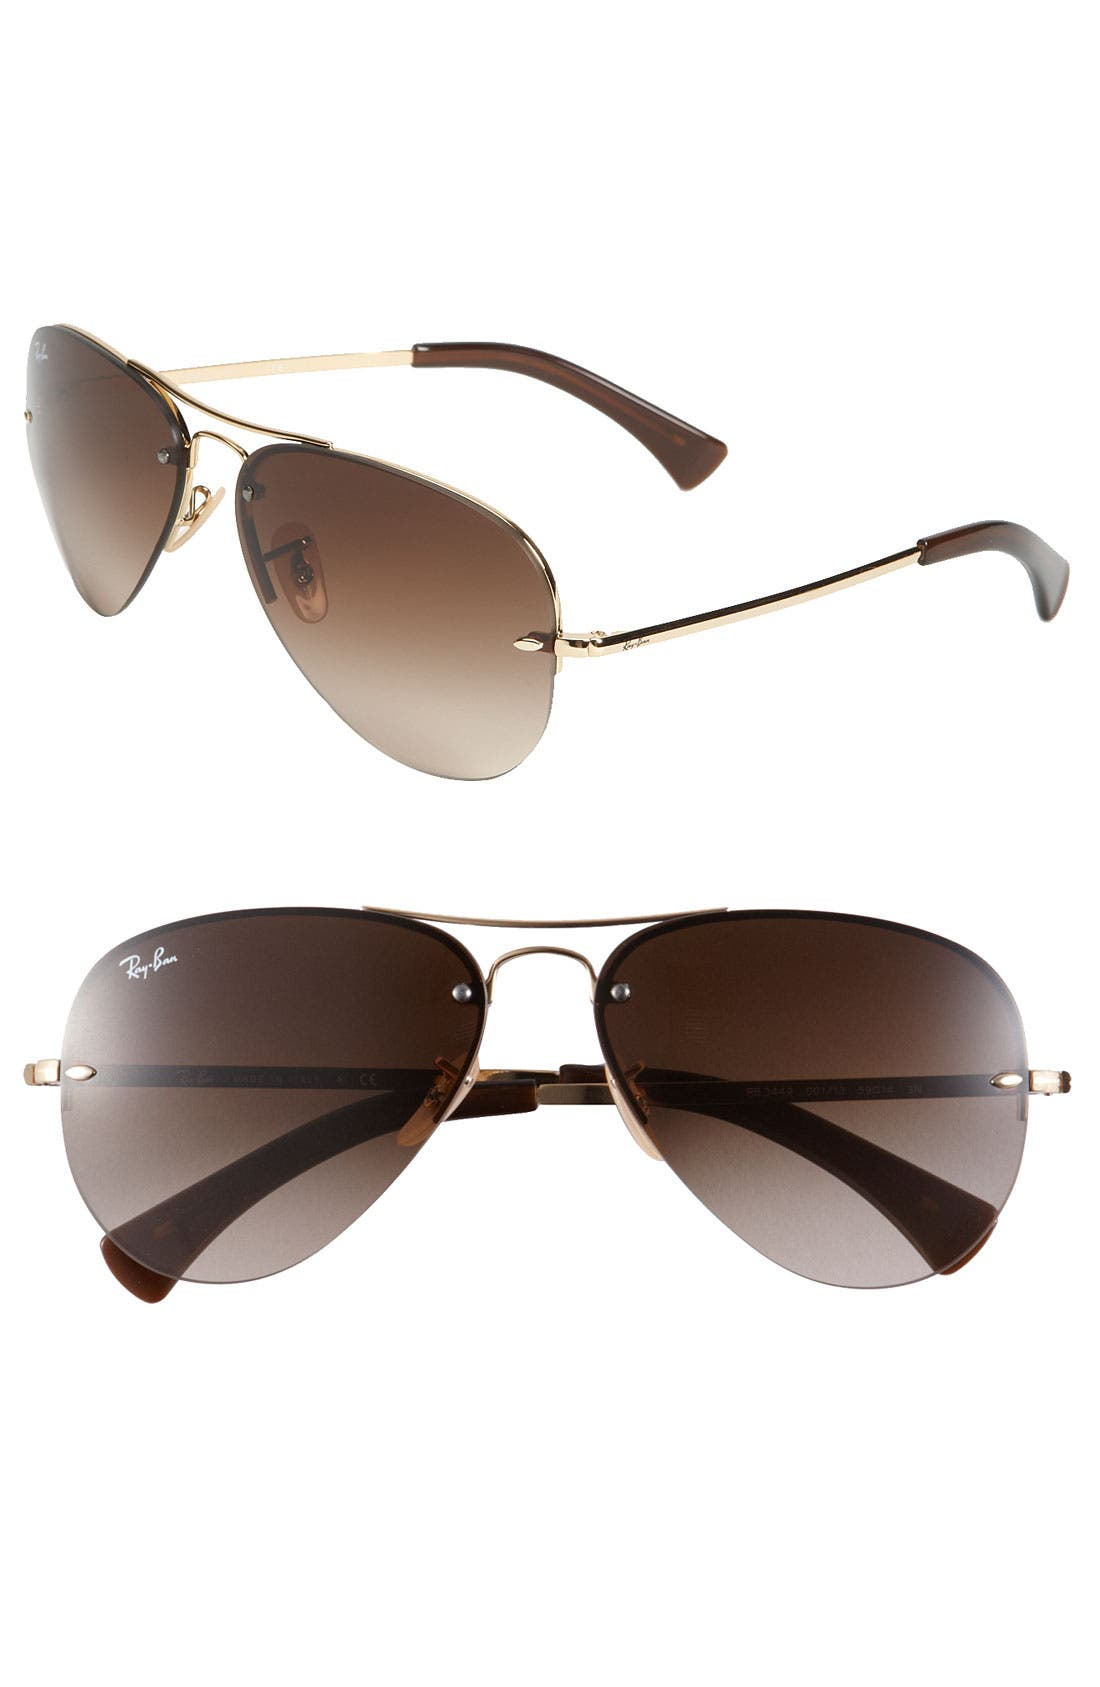 Alternate Image 1 Selected - Ray-Ban Highstreet 59mm Semi Rimless Aviator Sunglasses